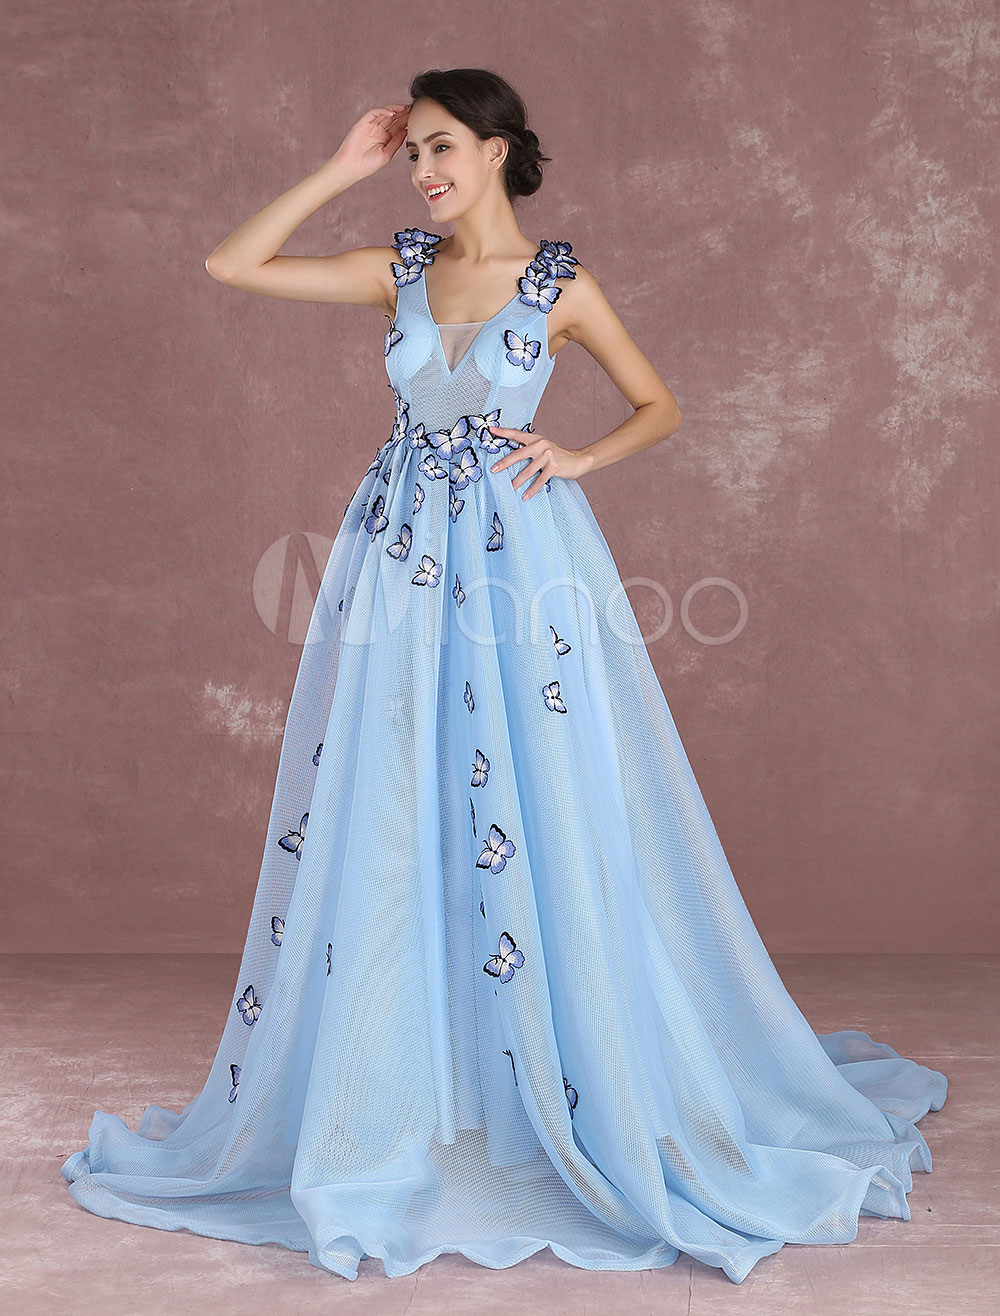 Baby Blue Quinceanera Dresses Princess Illusion Butterfly